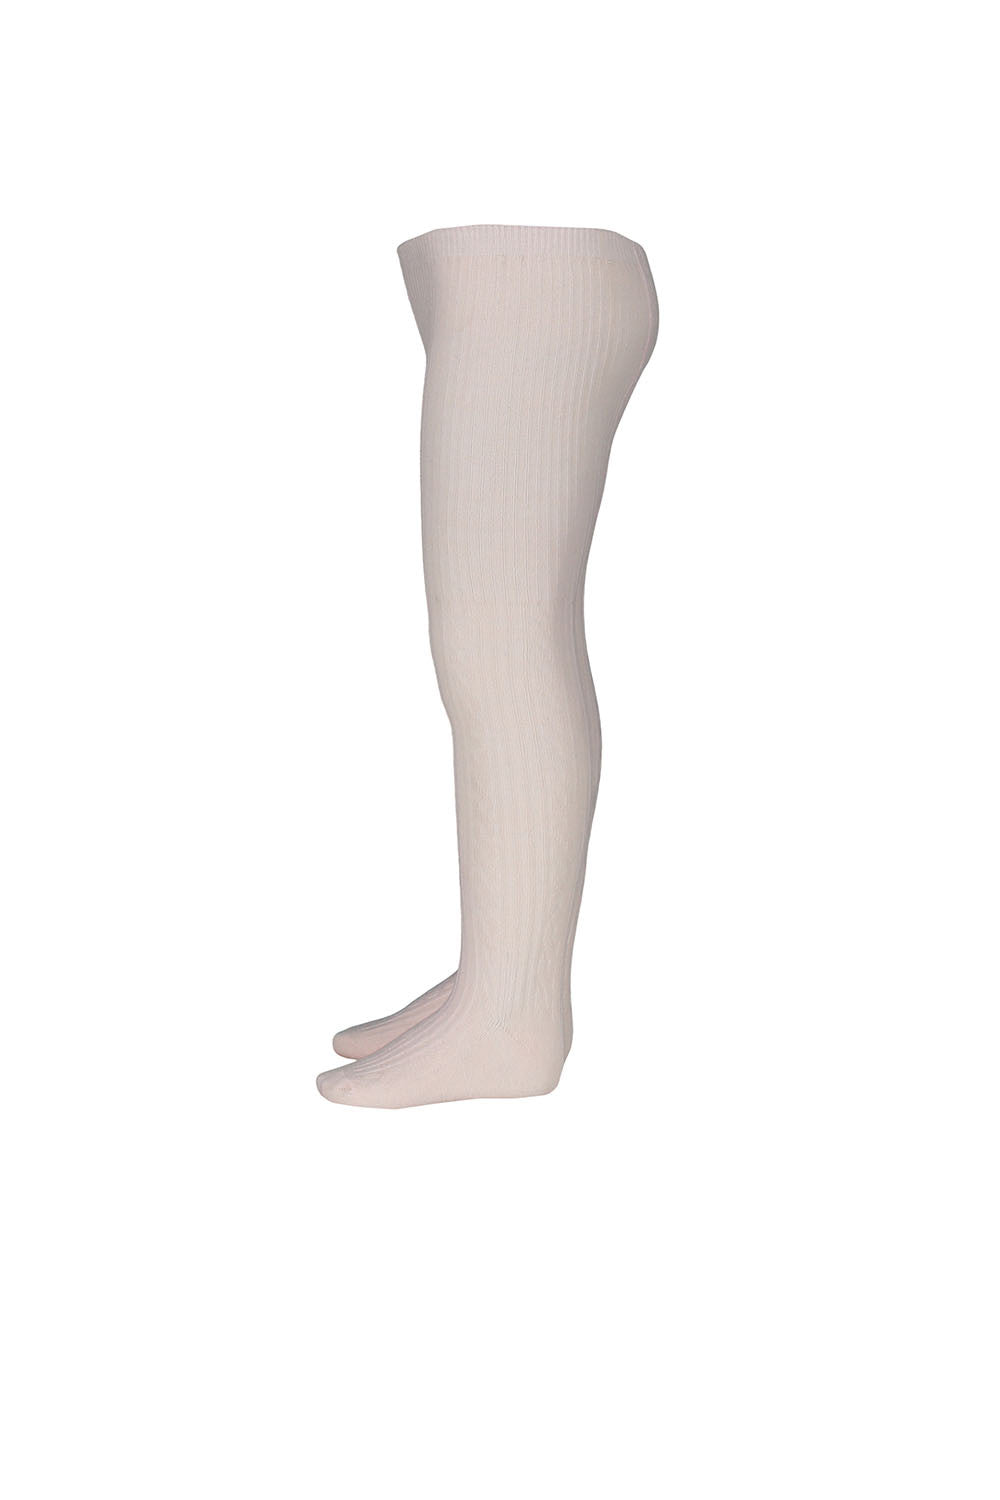 Jacquard Tights - Pale Rose